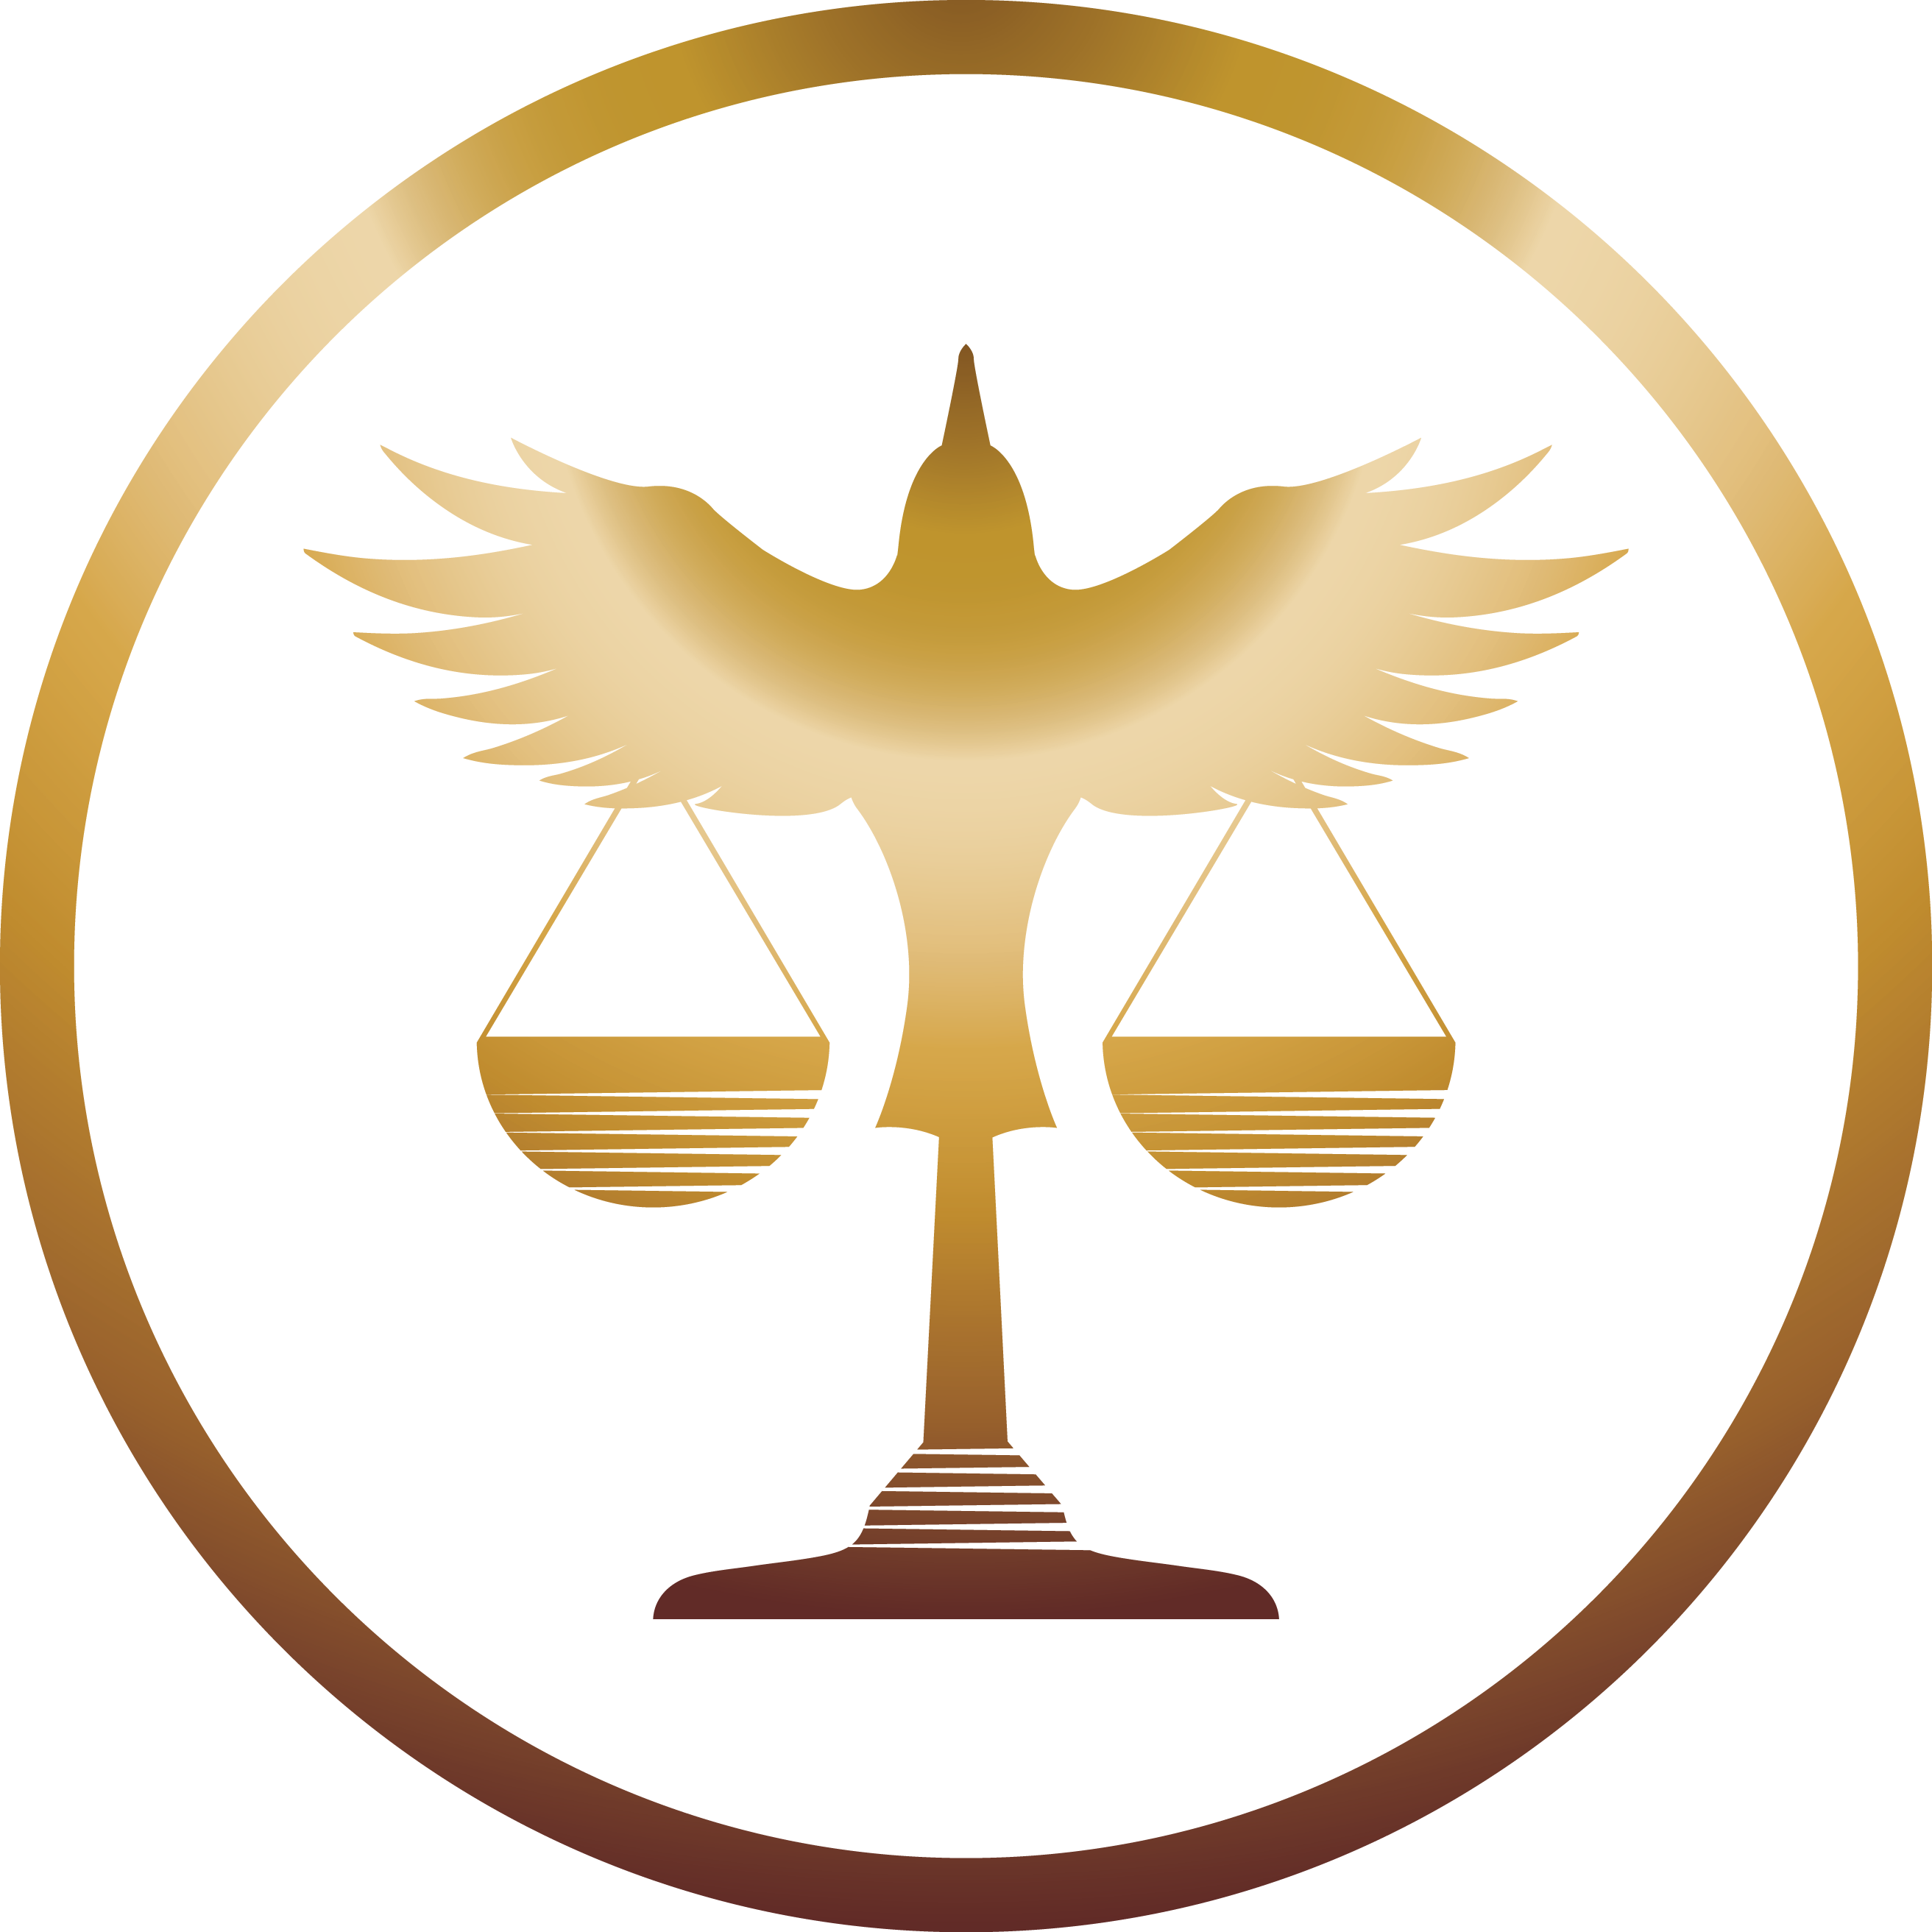 Clark law and associates. Laws clipart legal aid